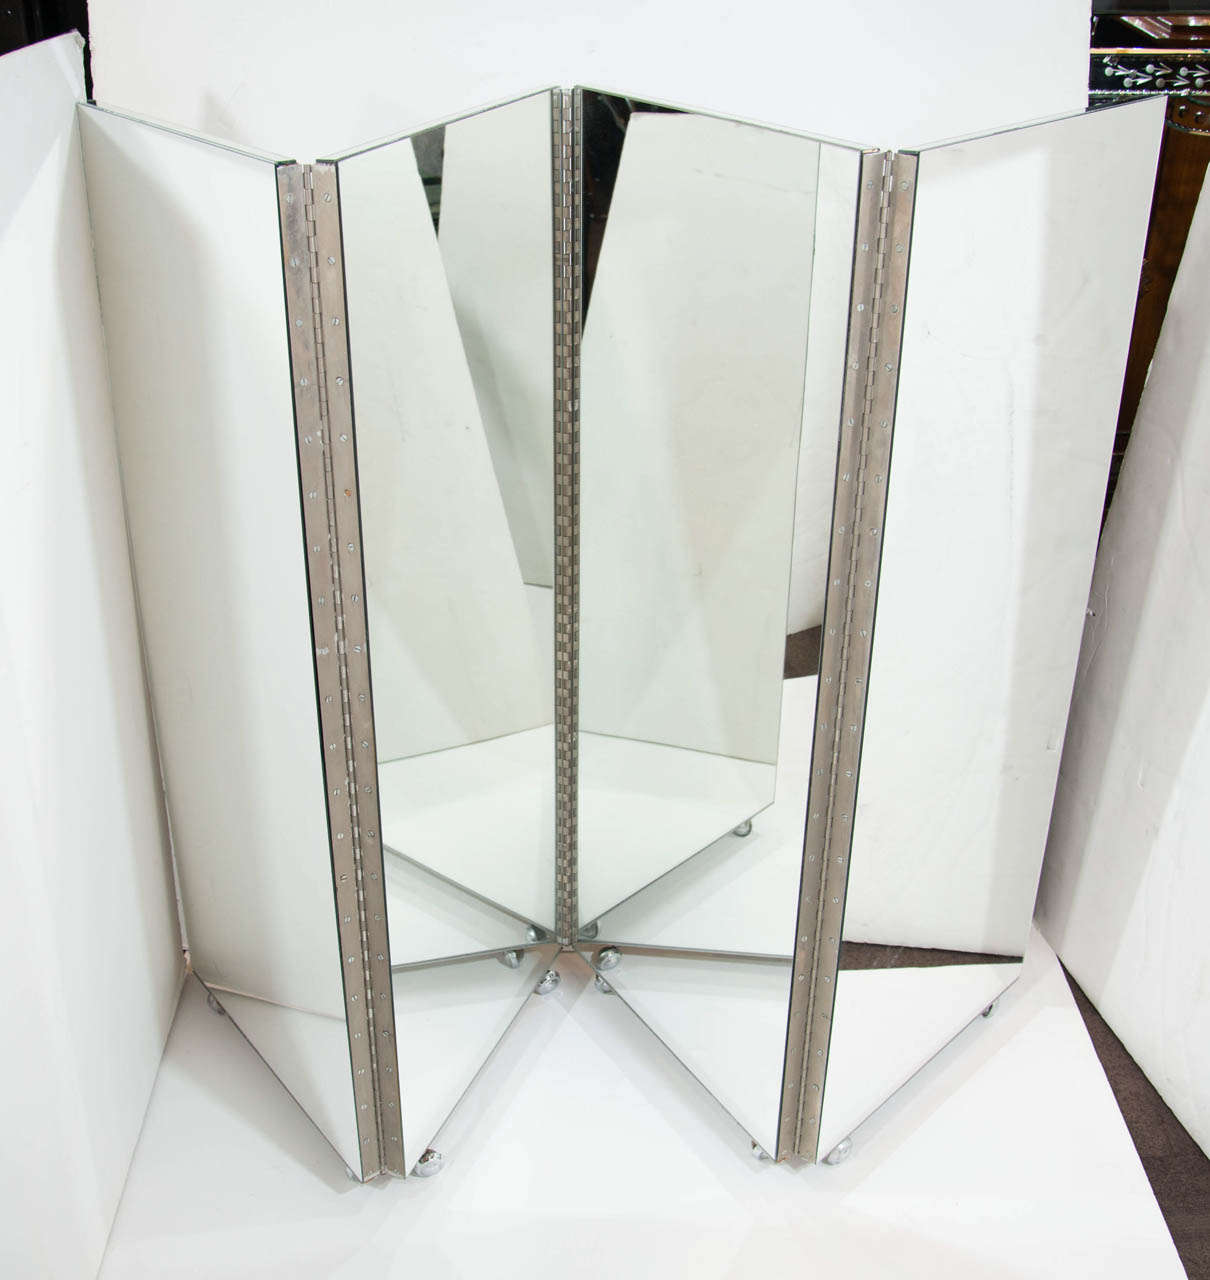 Vintage Mid-Century Modern Four-Panel Mirrored Screen and Room Divider 2